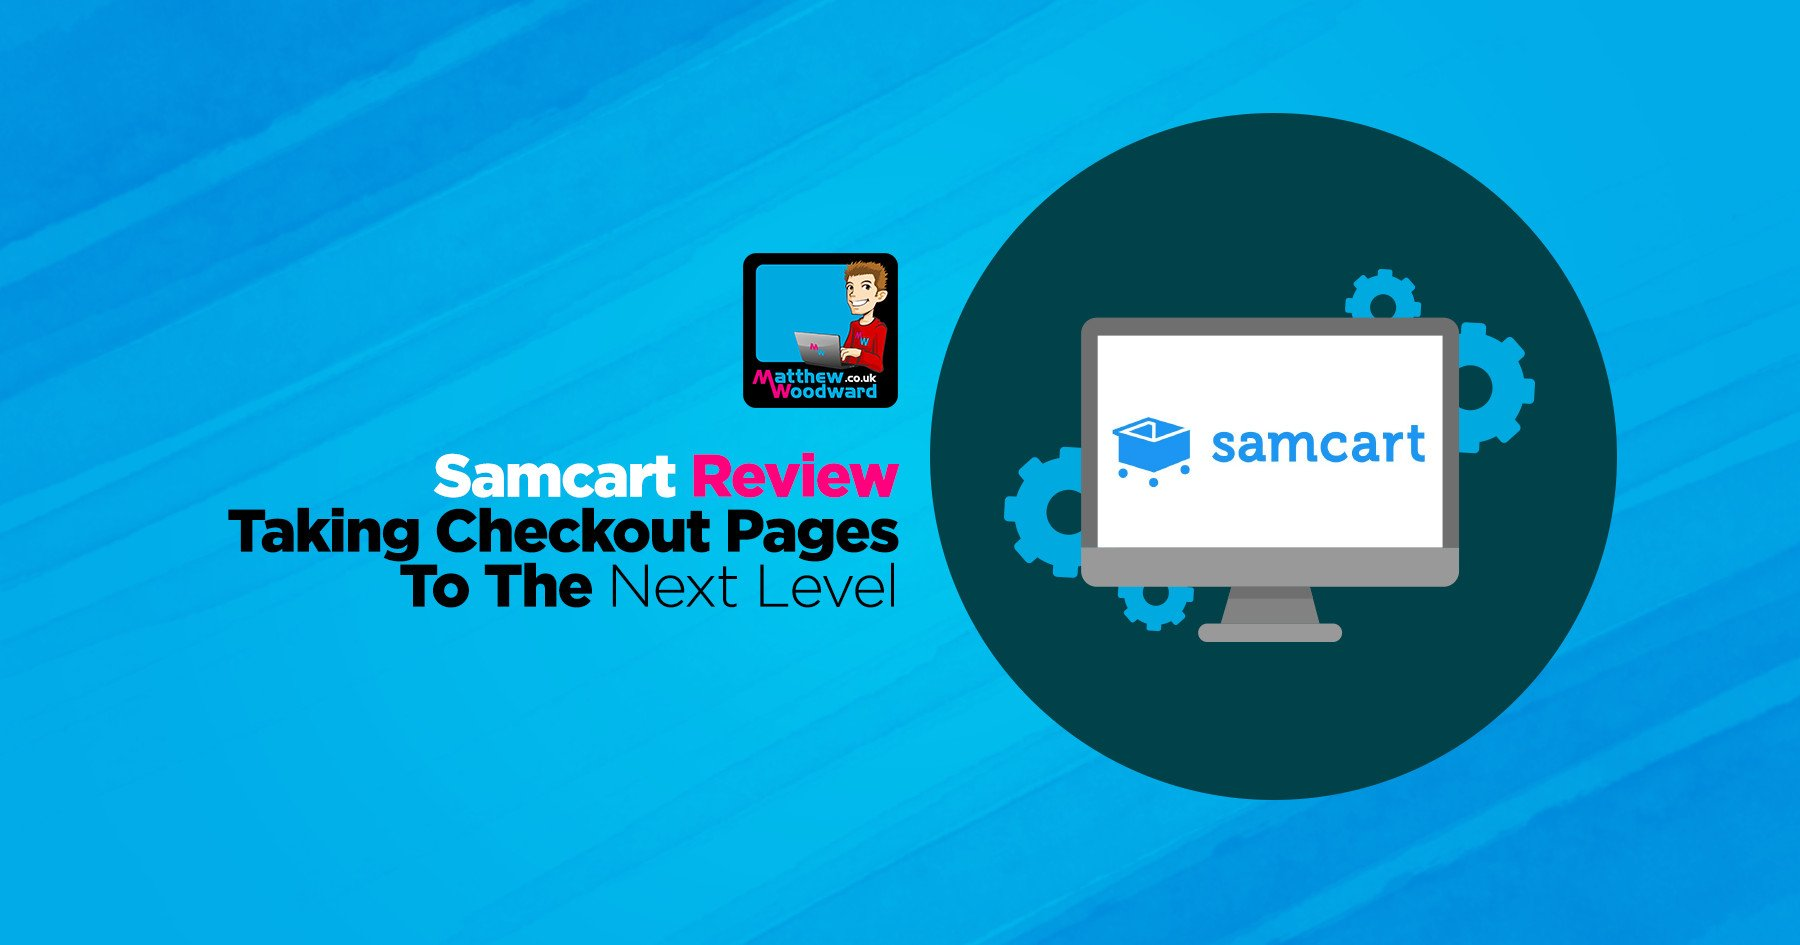 30% Off Voucher Code Samcart